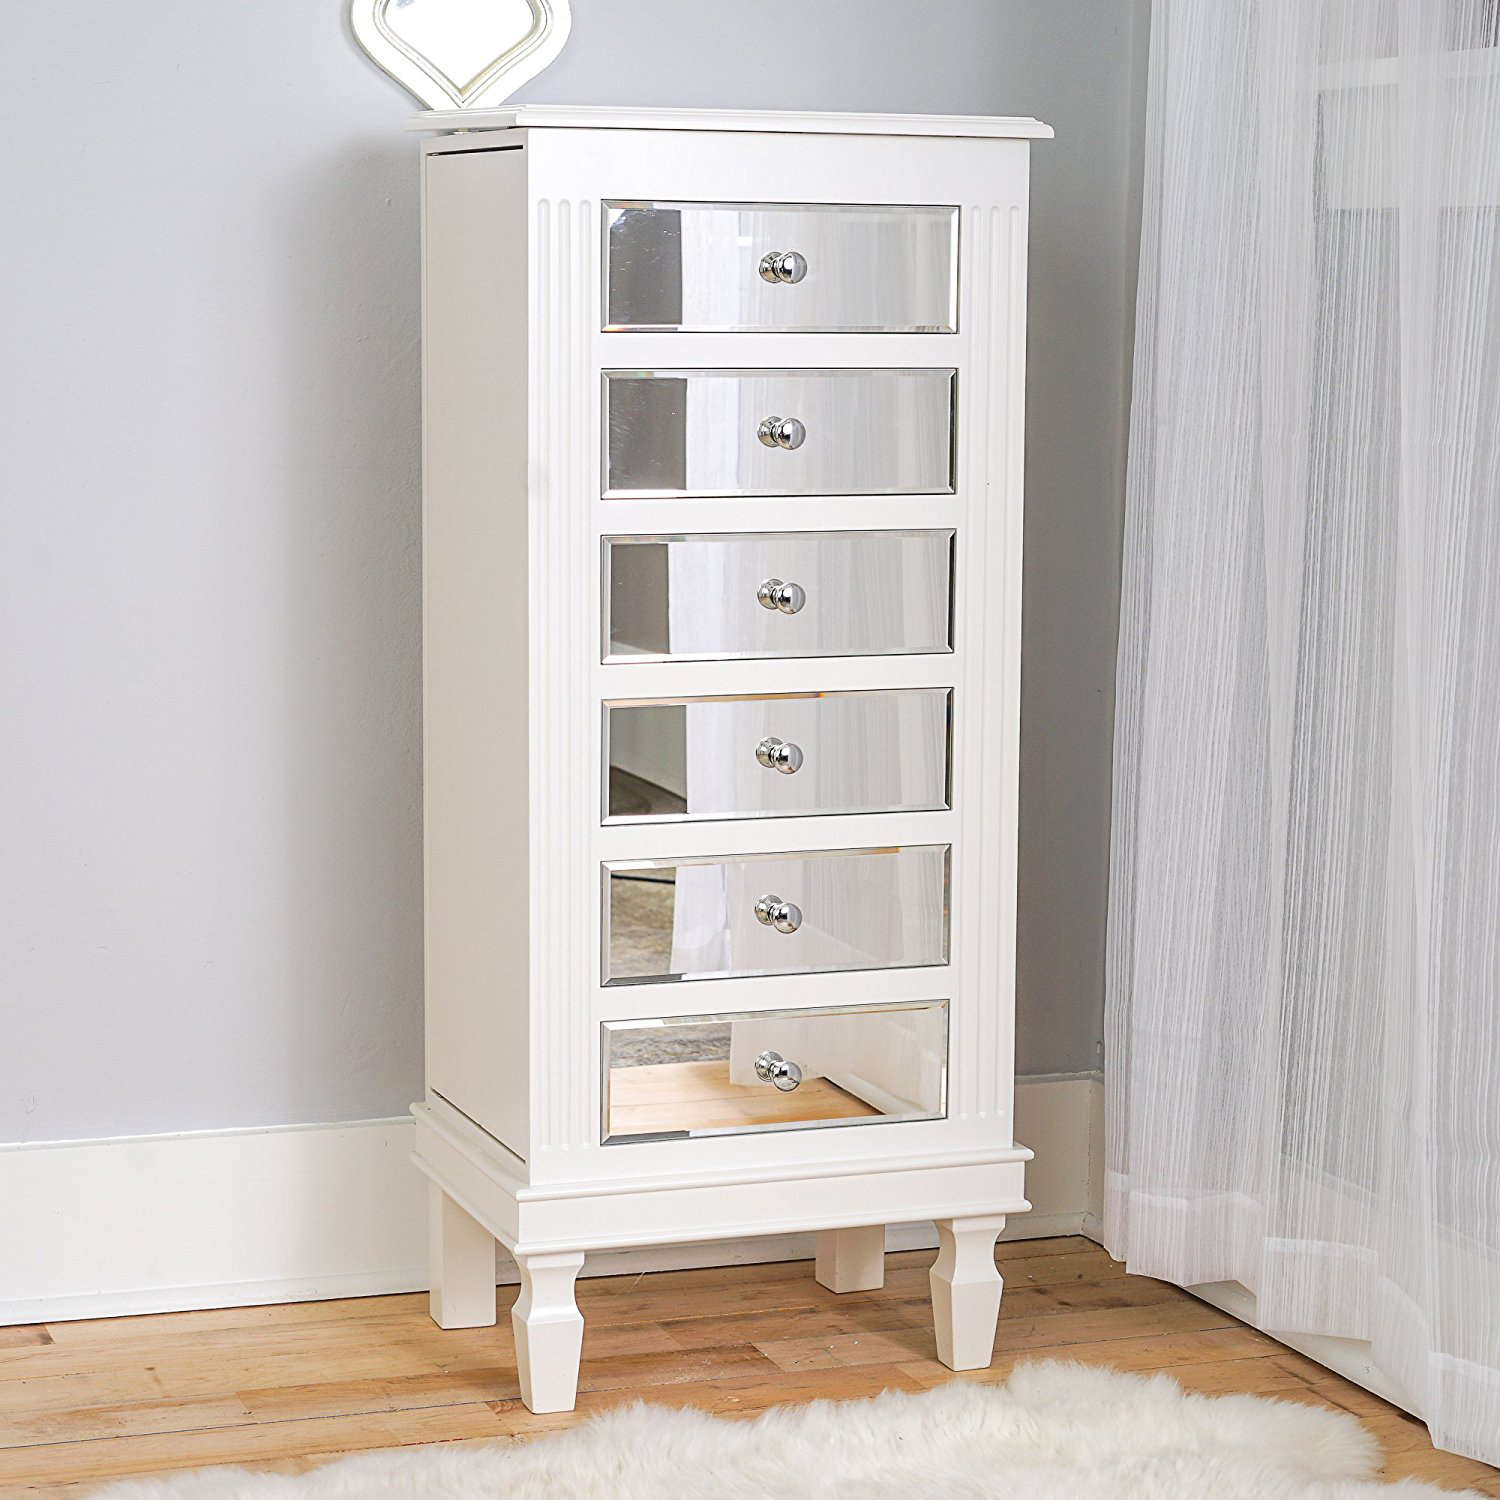 Elegant White Floor Standing Mirrored Drawers Jewelry Armoire